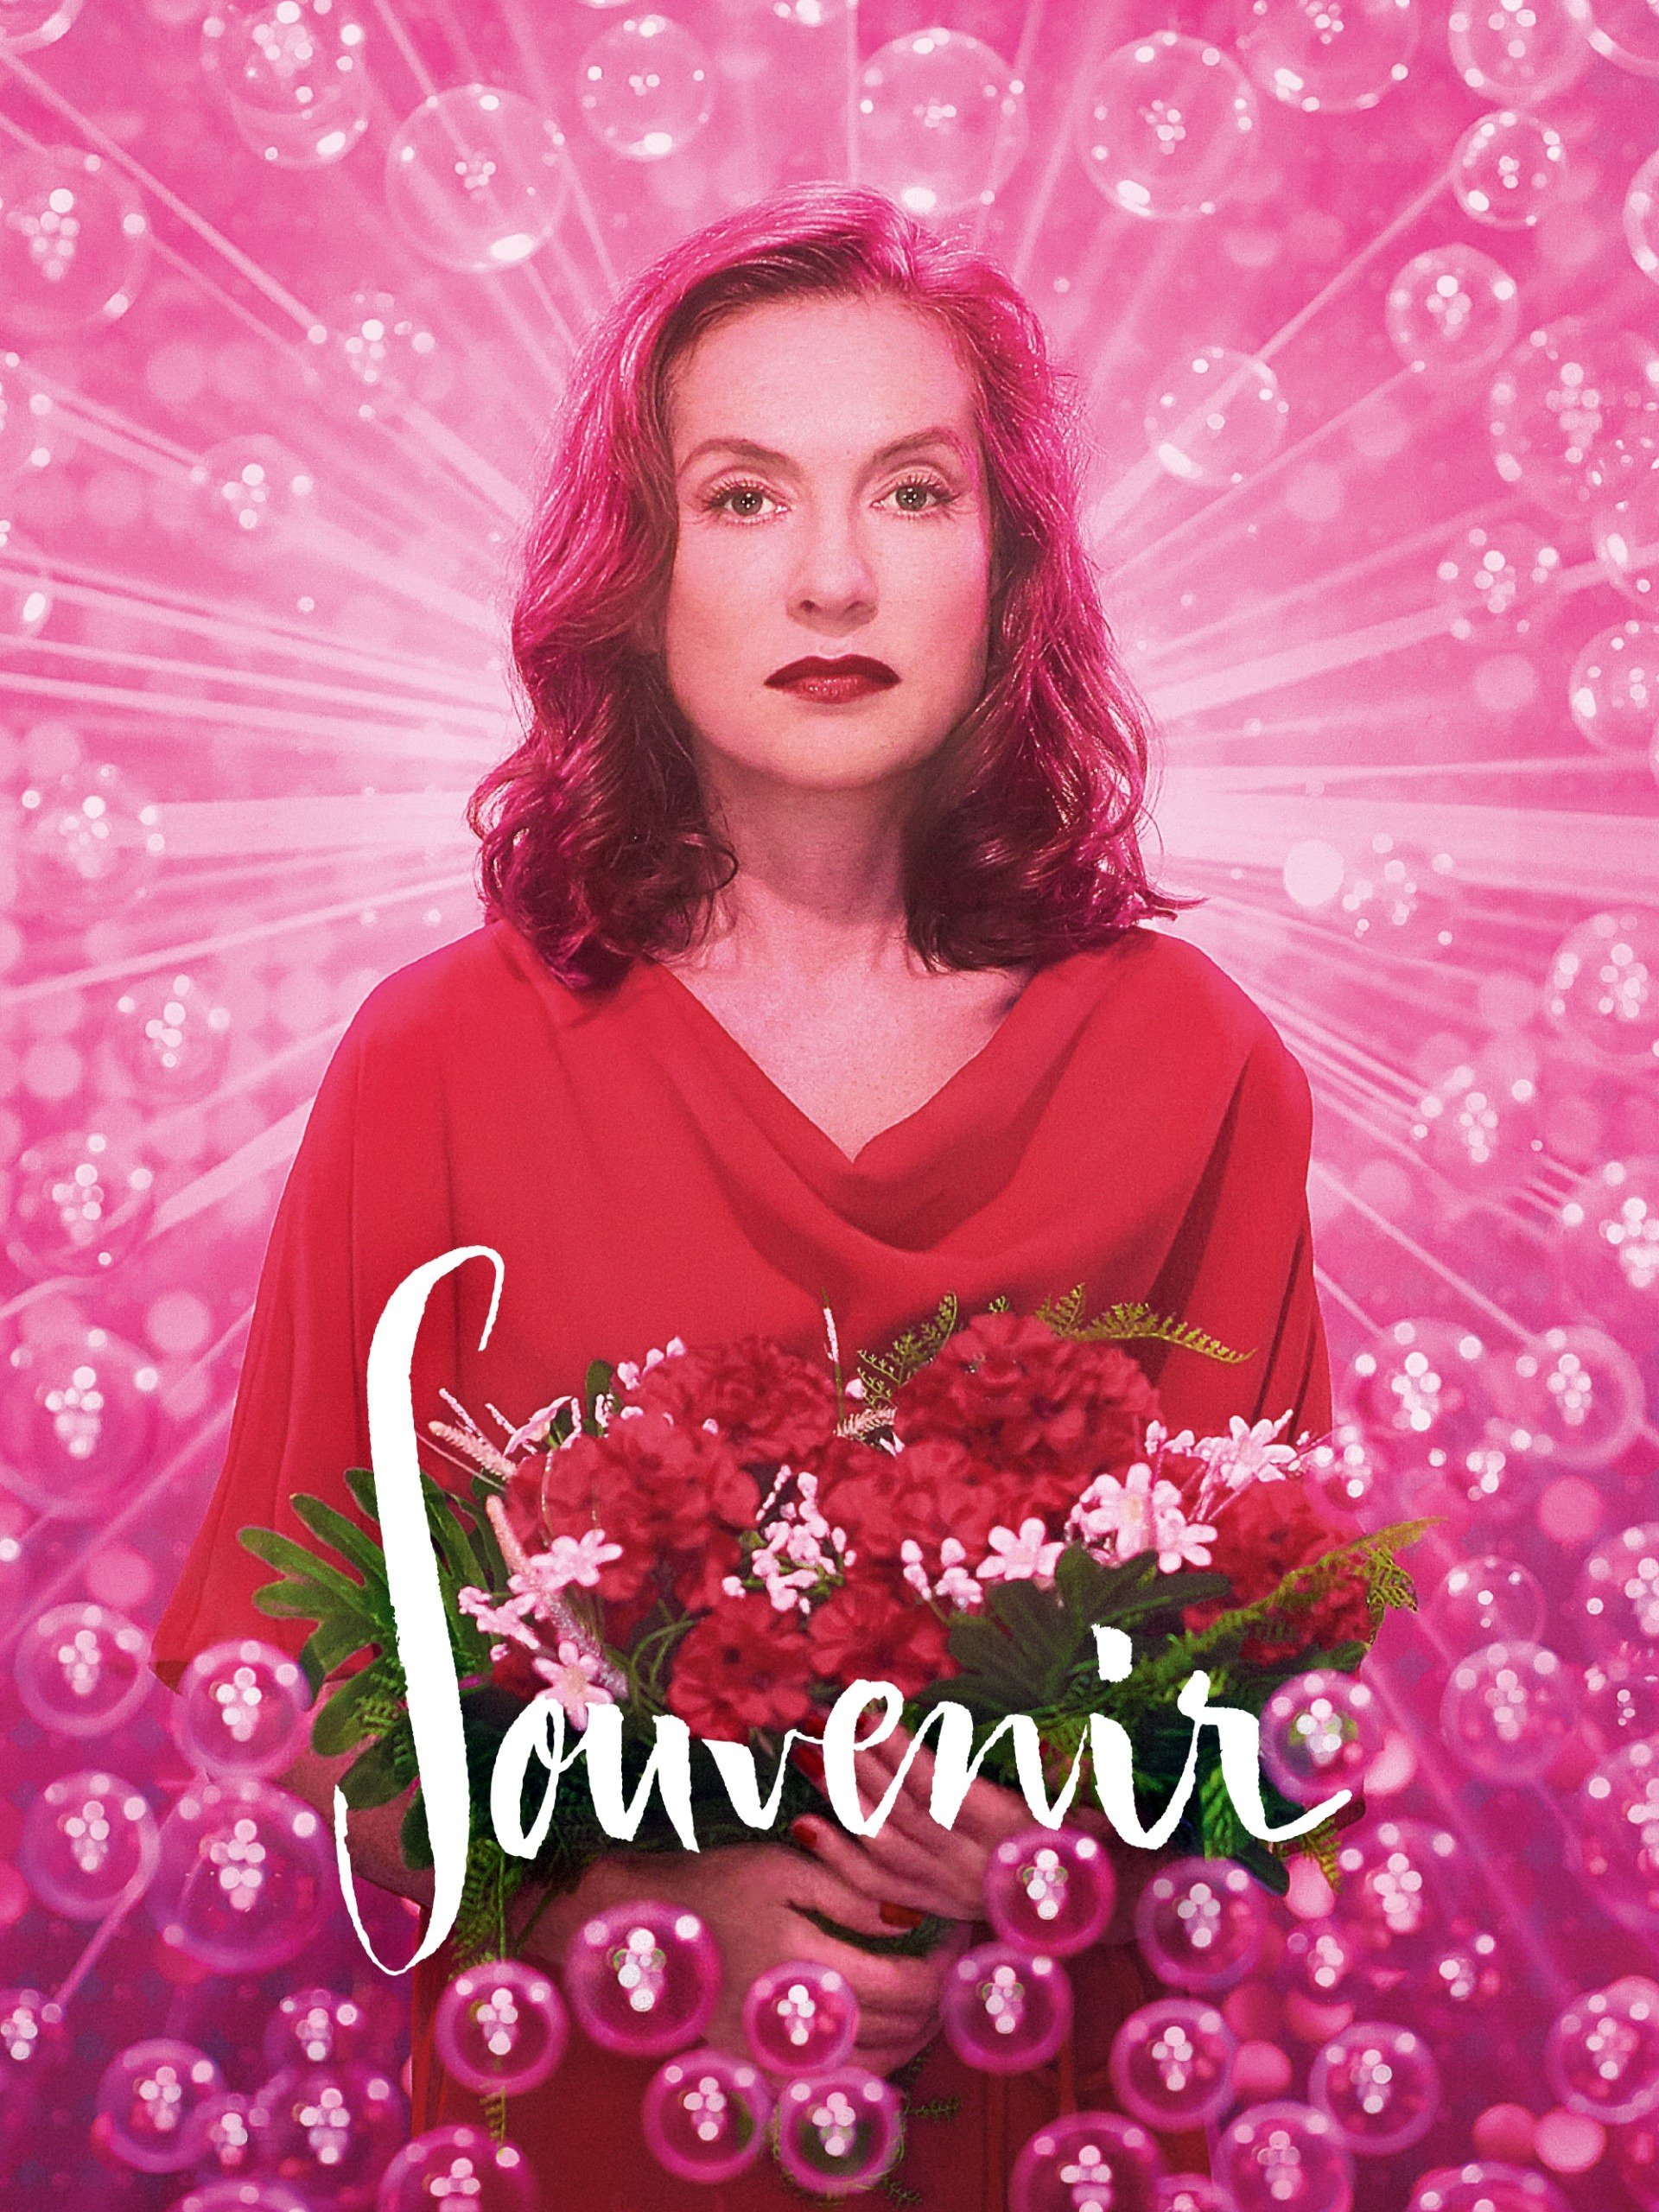 Souvenir on Amazon Prime Video UK